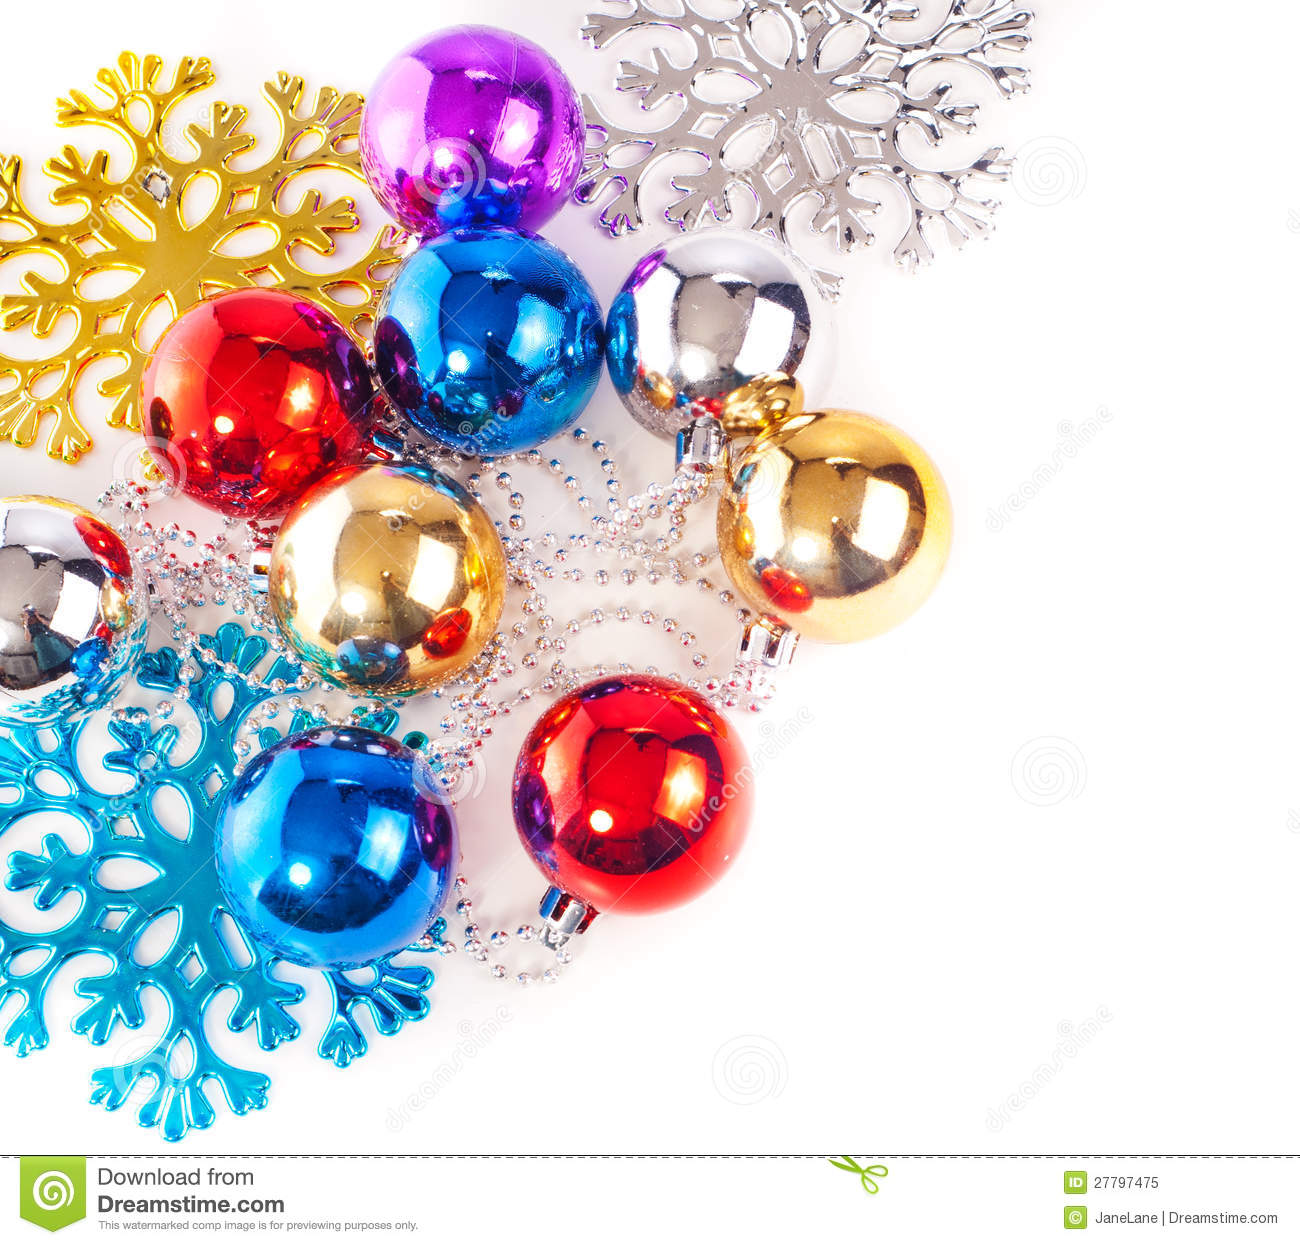 colorful new year decoration - photo #38